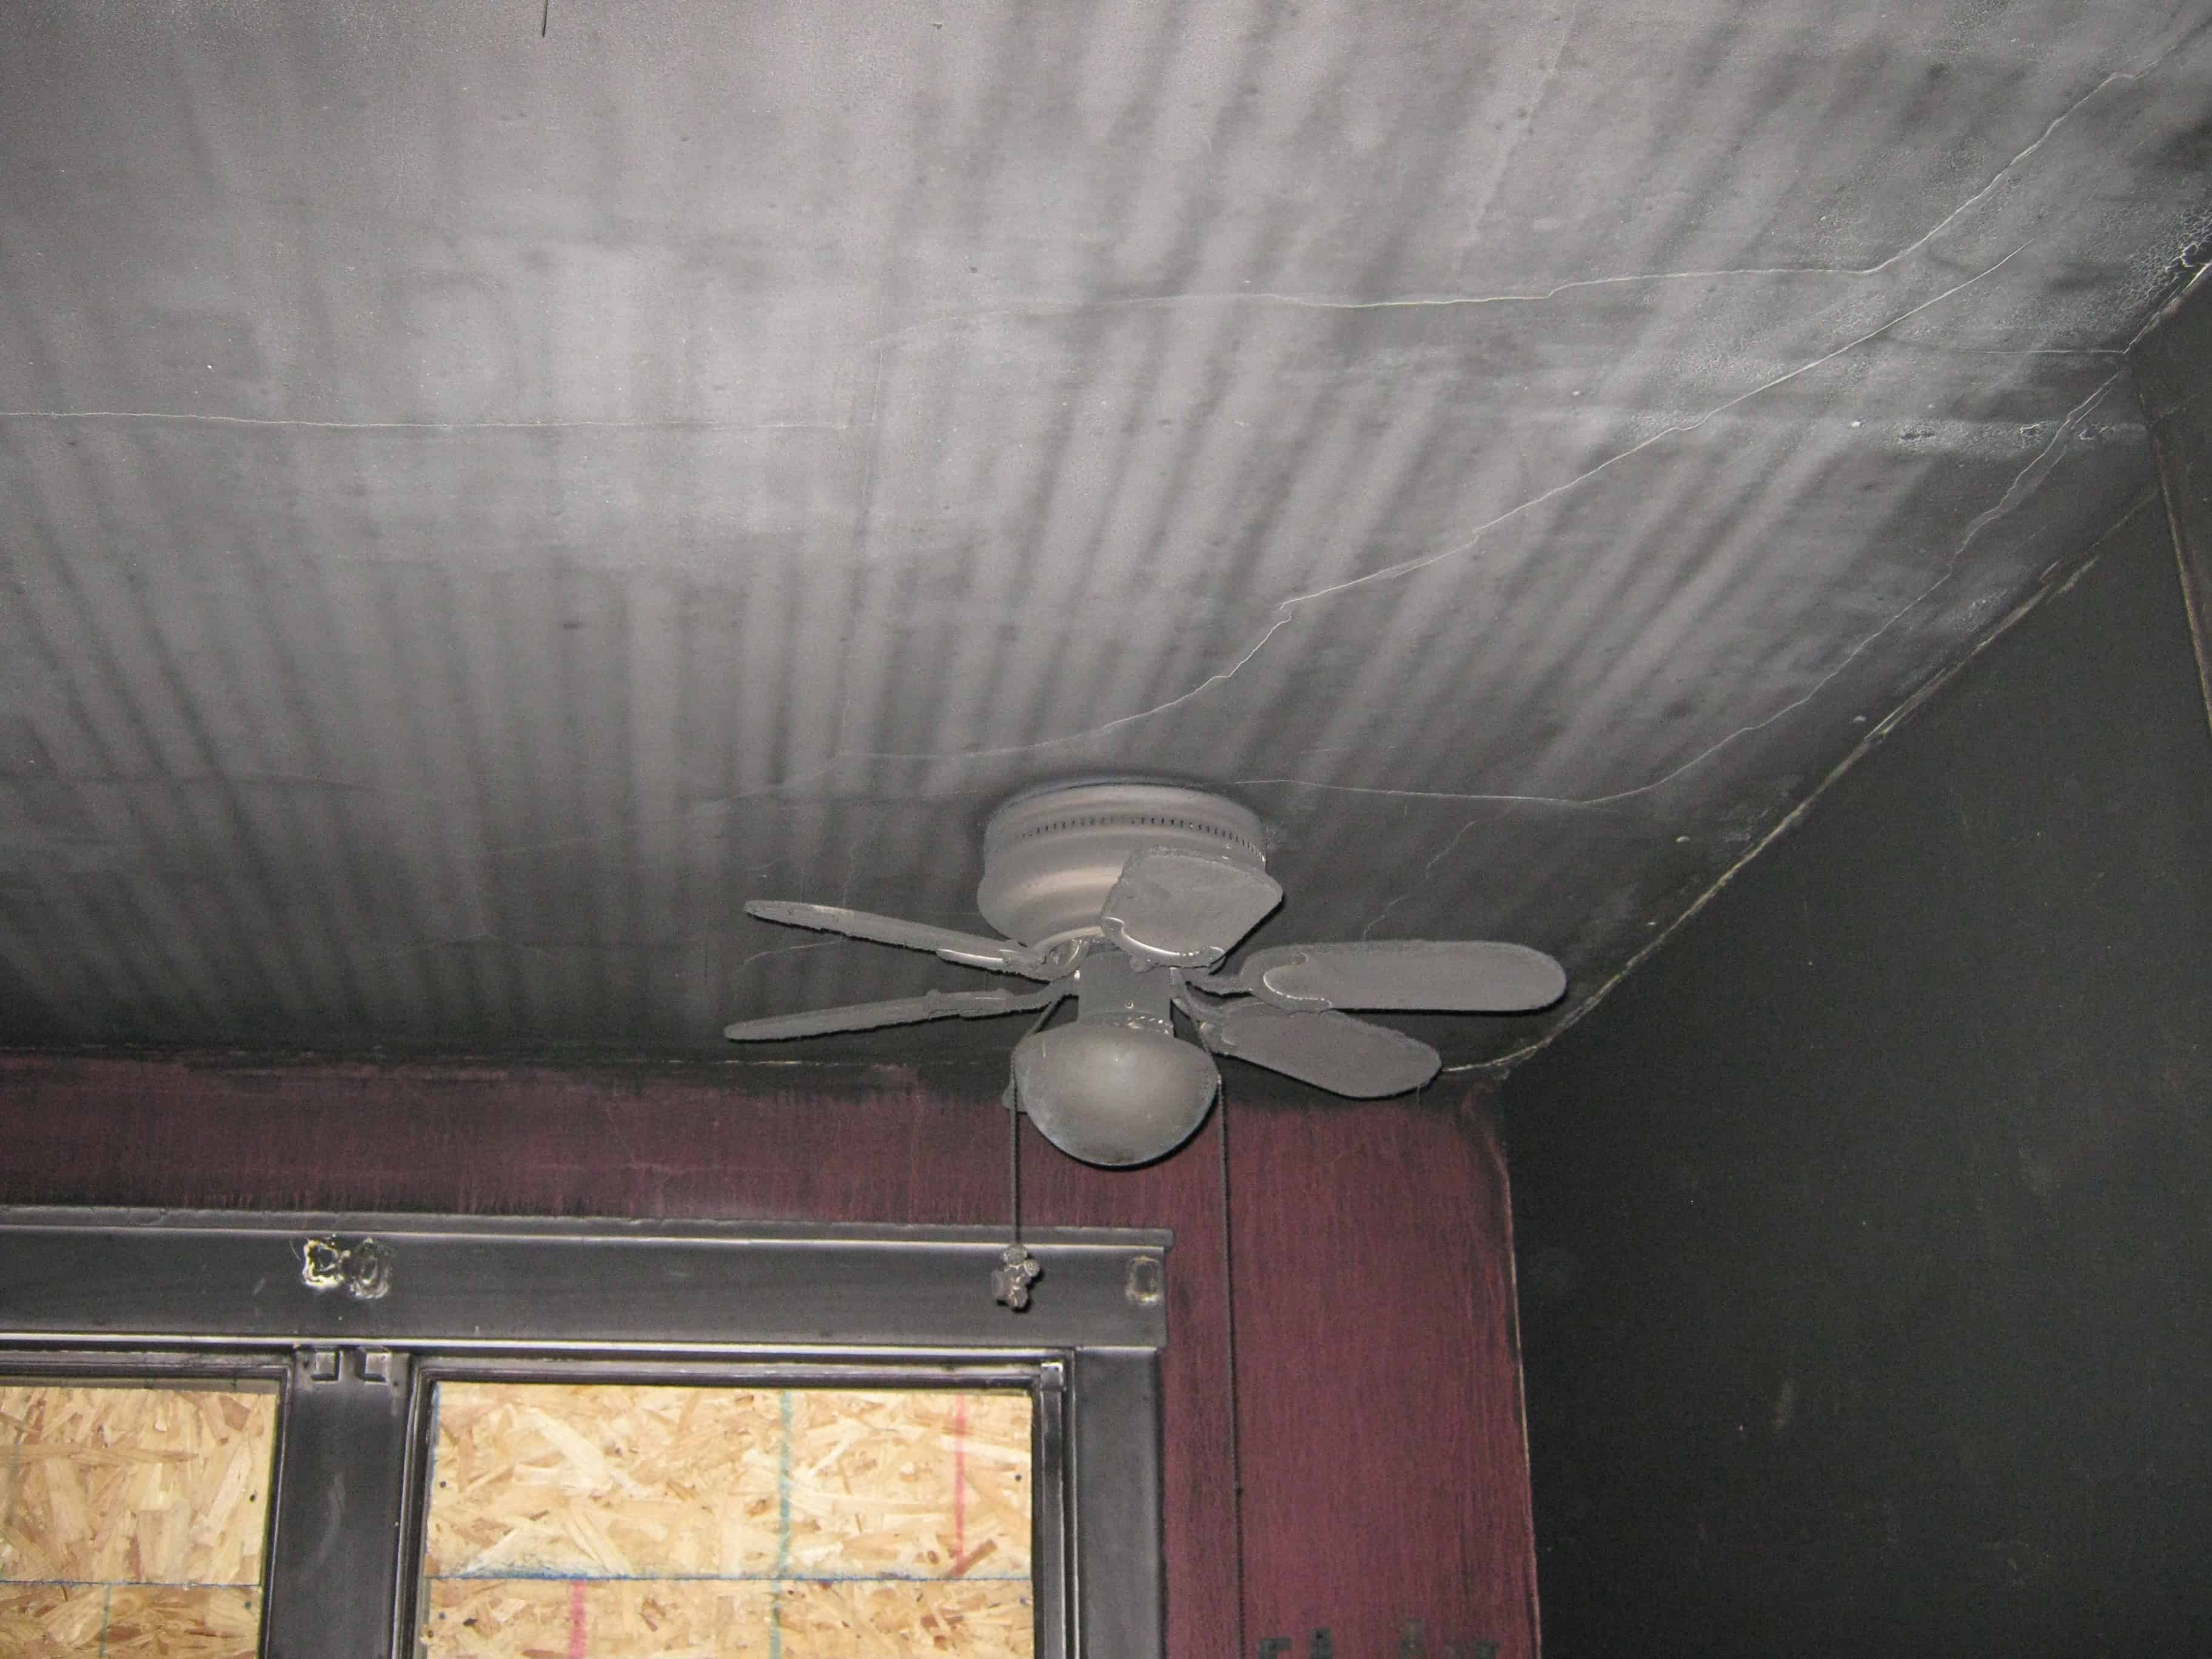 puff back damage on ceiling